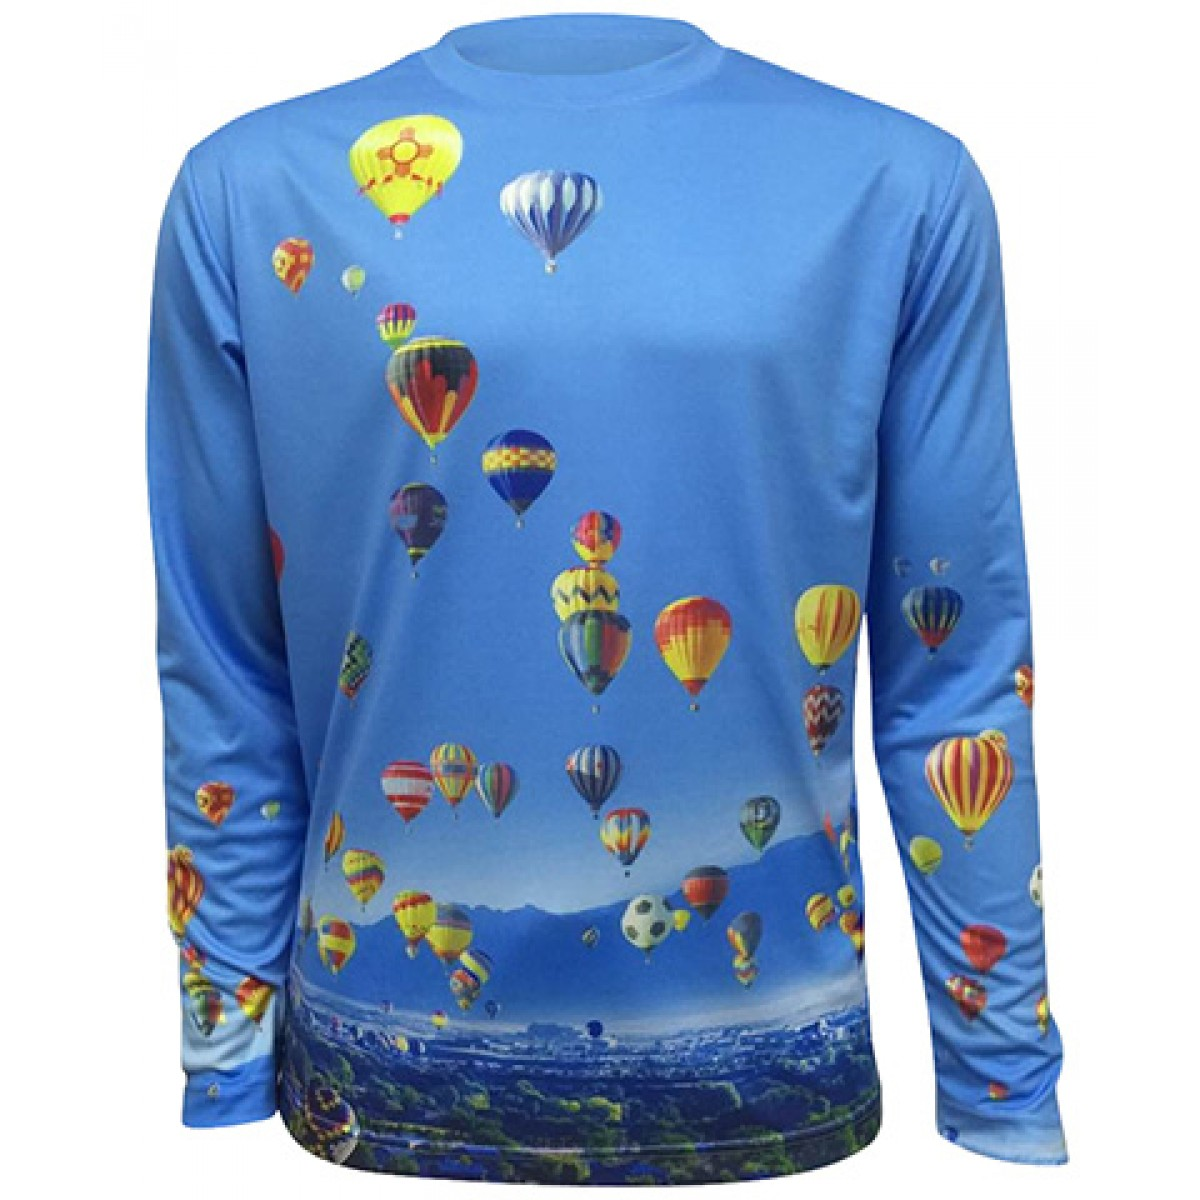 AIBF Sublimated Long Sleeve-Blue-S